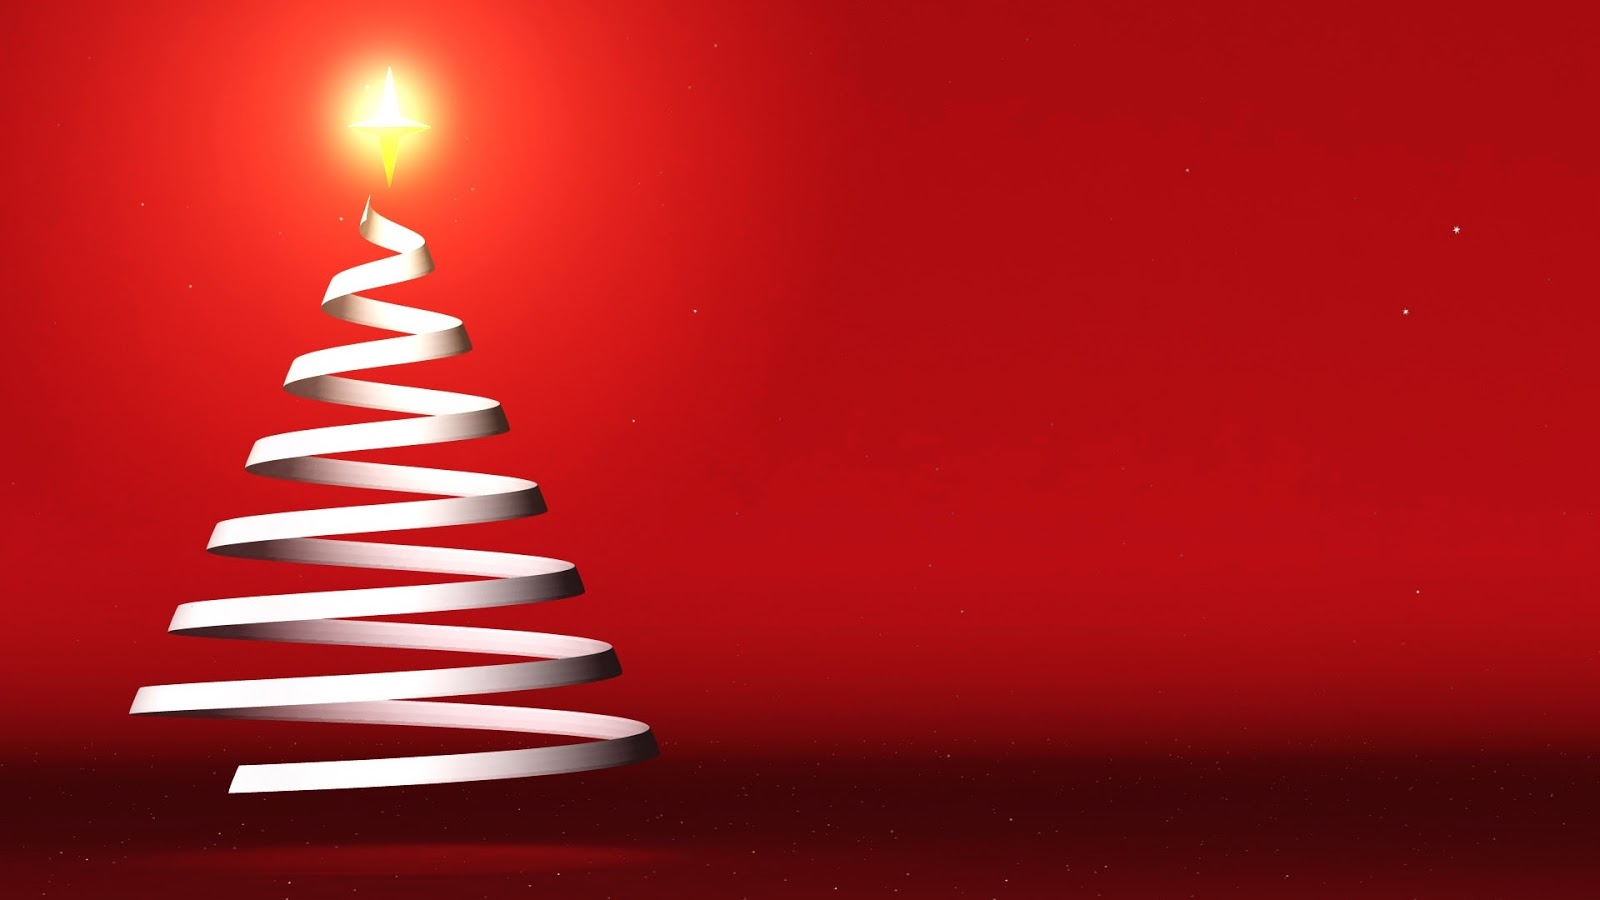 high definition wallpapers 1920x1080 christmas - photo #18